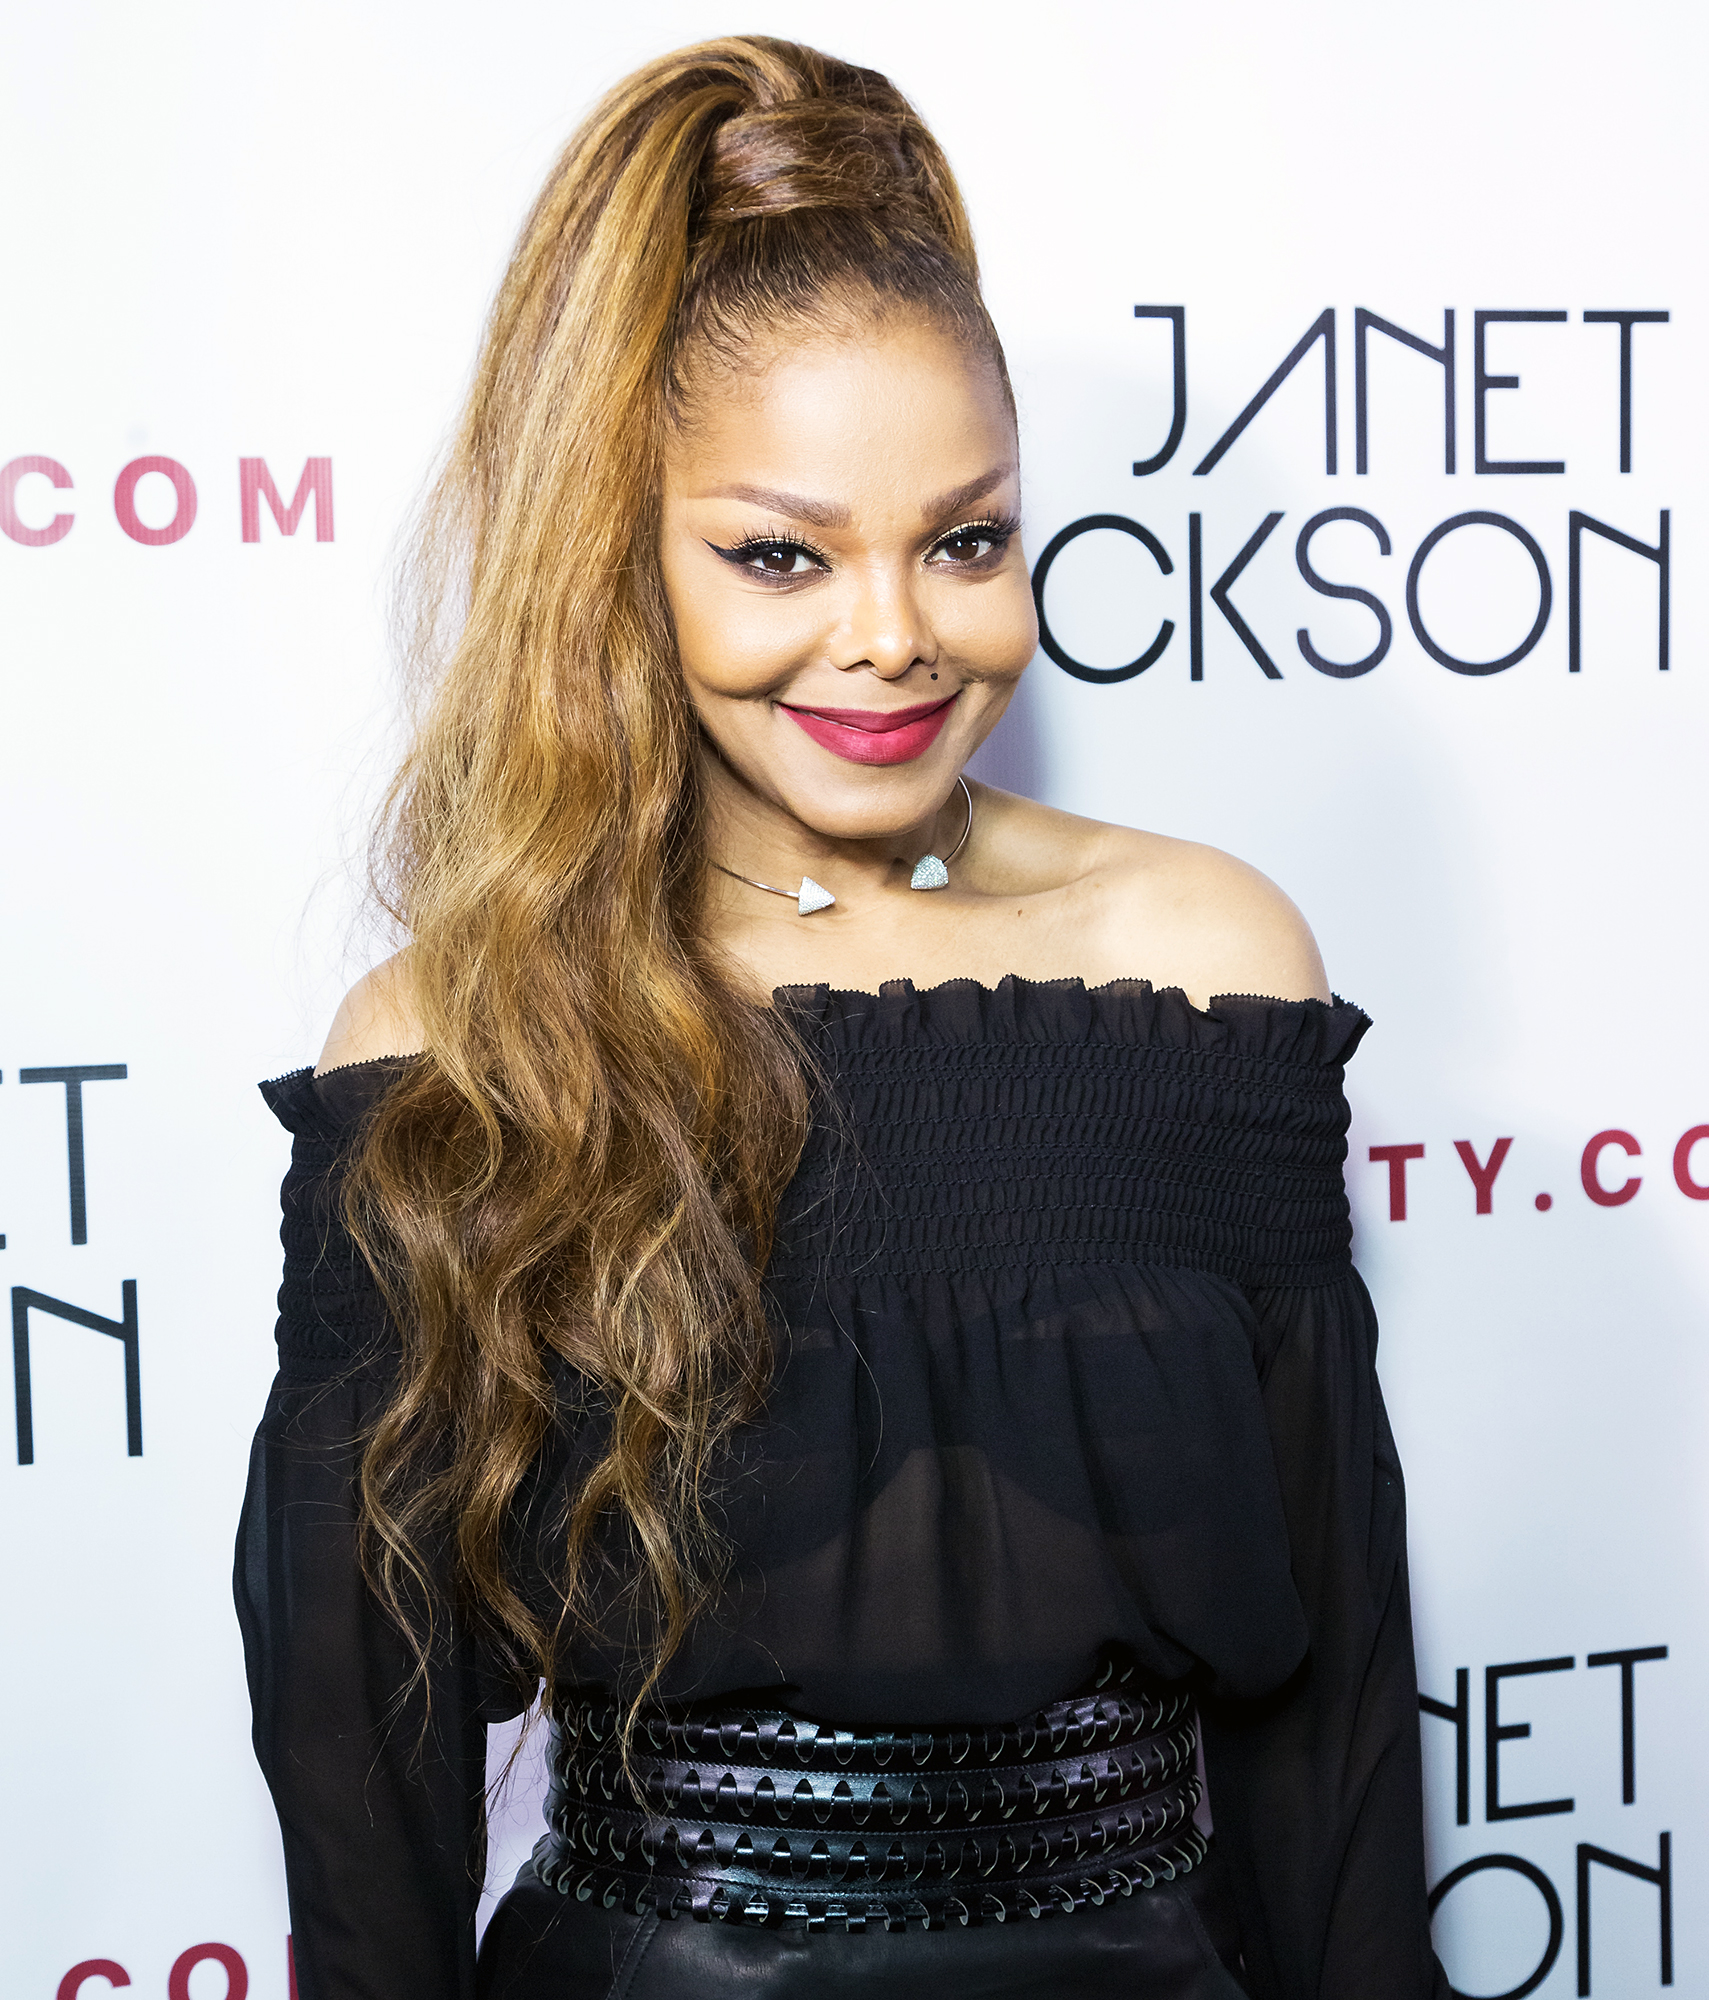 Janet Jackson calls police to check on 1-year-old son's welfare